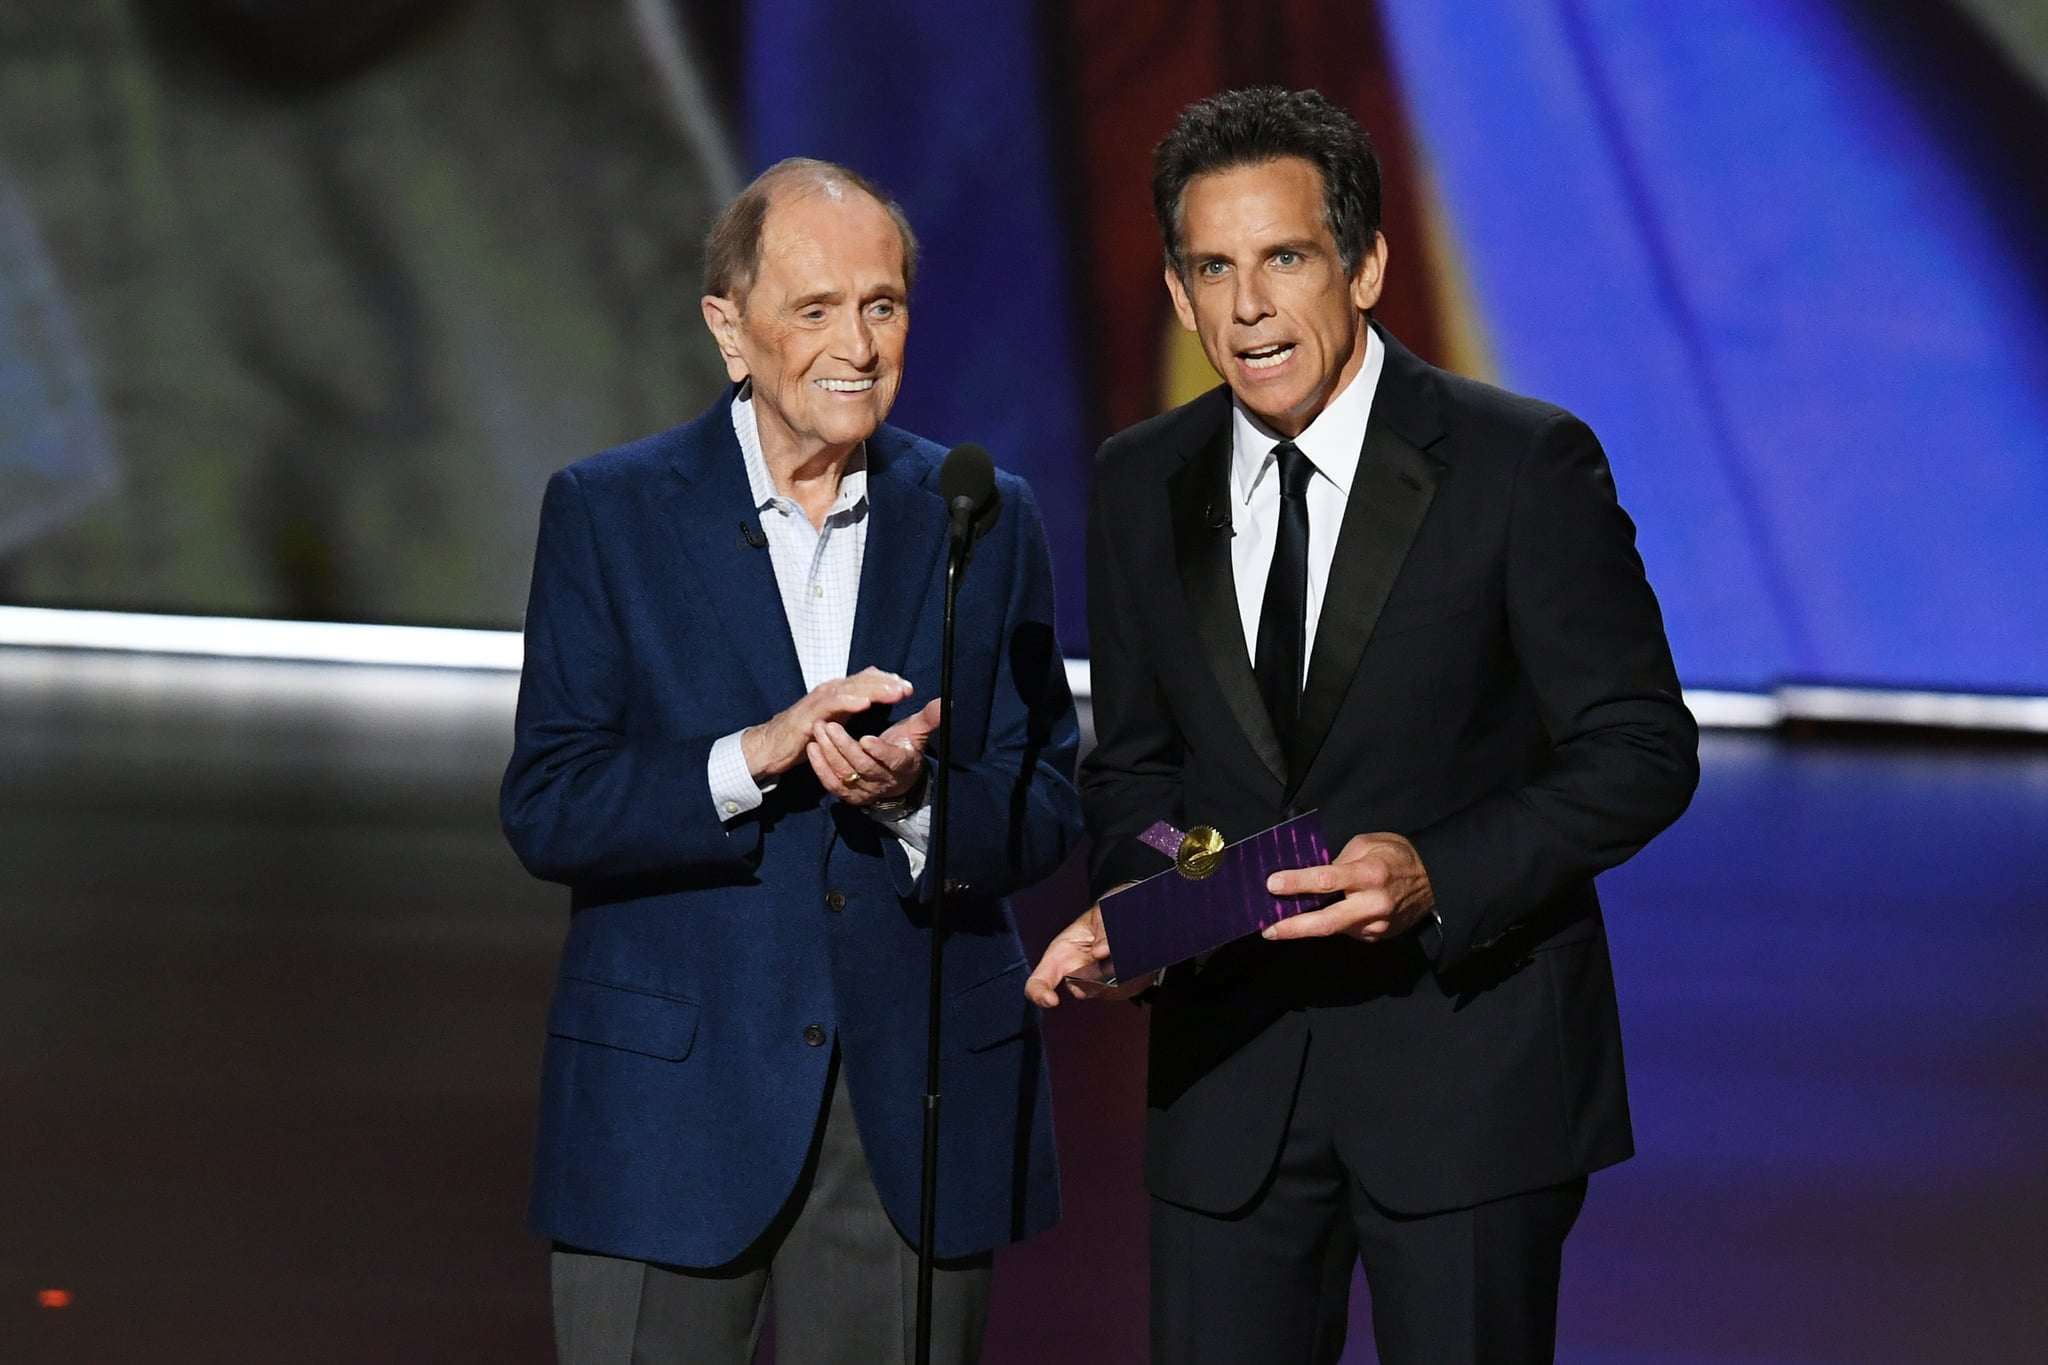 Legendary Comedian Bob Newhart Crushed His Emmys Bit, and We're Not Even Surprised